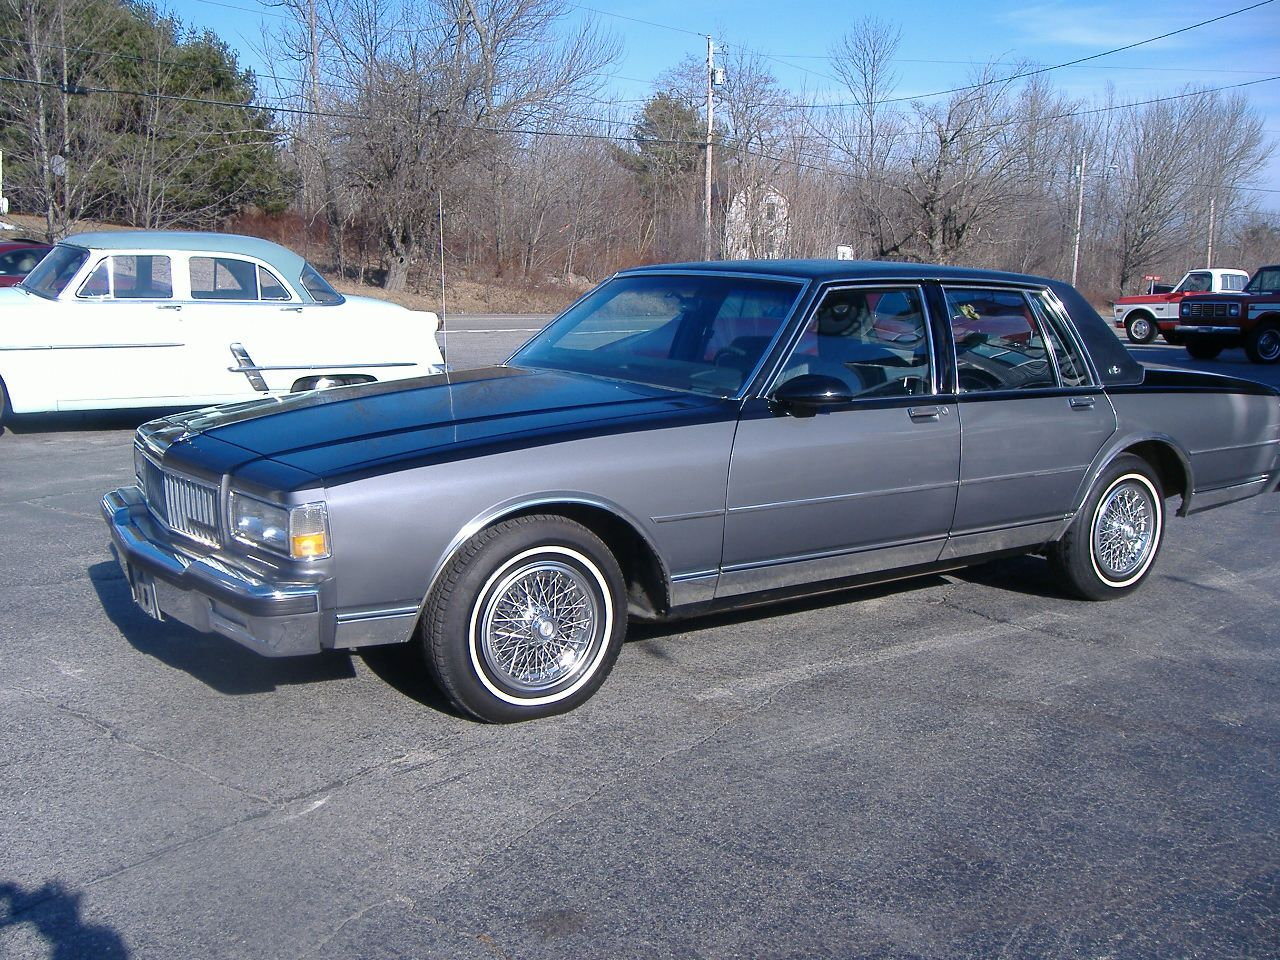 Chevy Caprice Classic Cool Cars Motorcycles Pinterest - Cool cars 1983